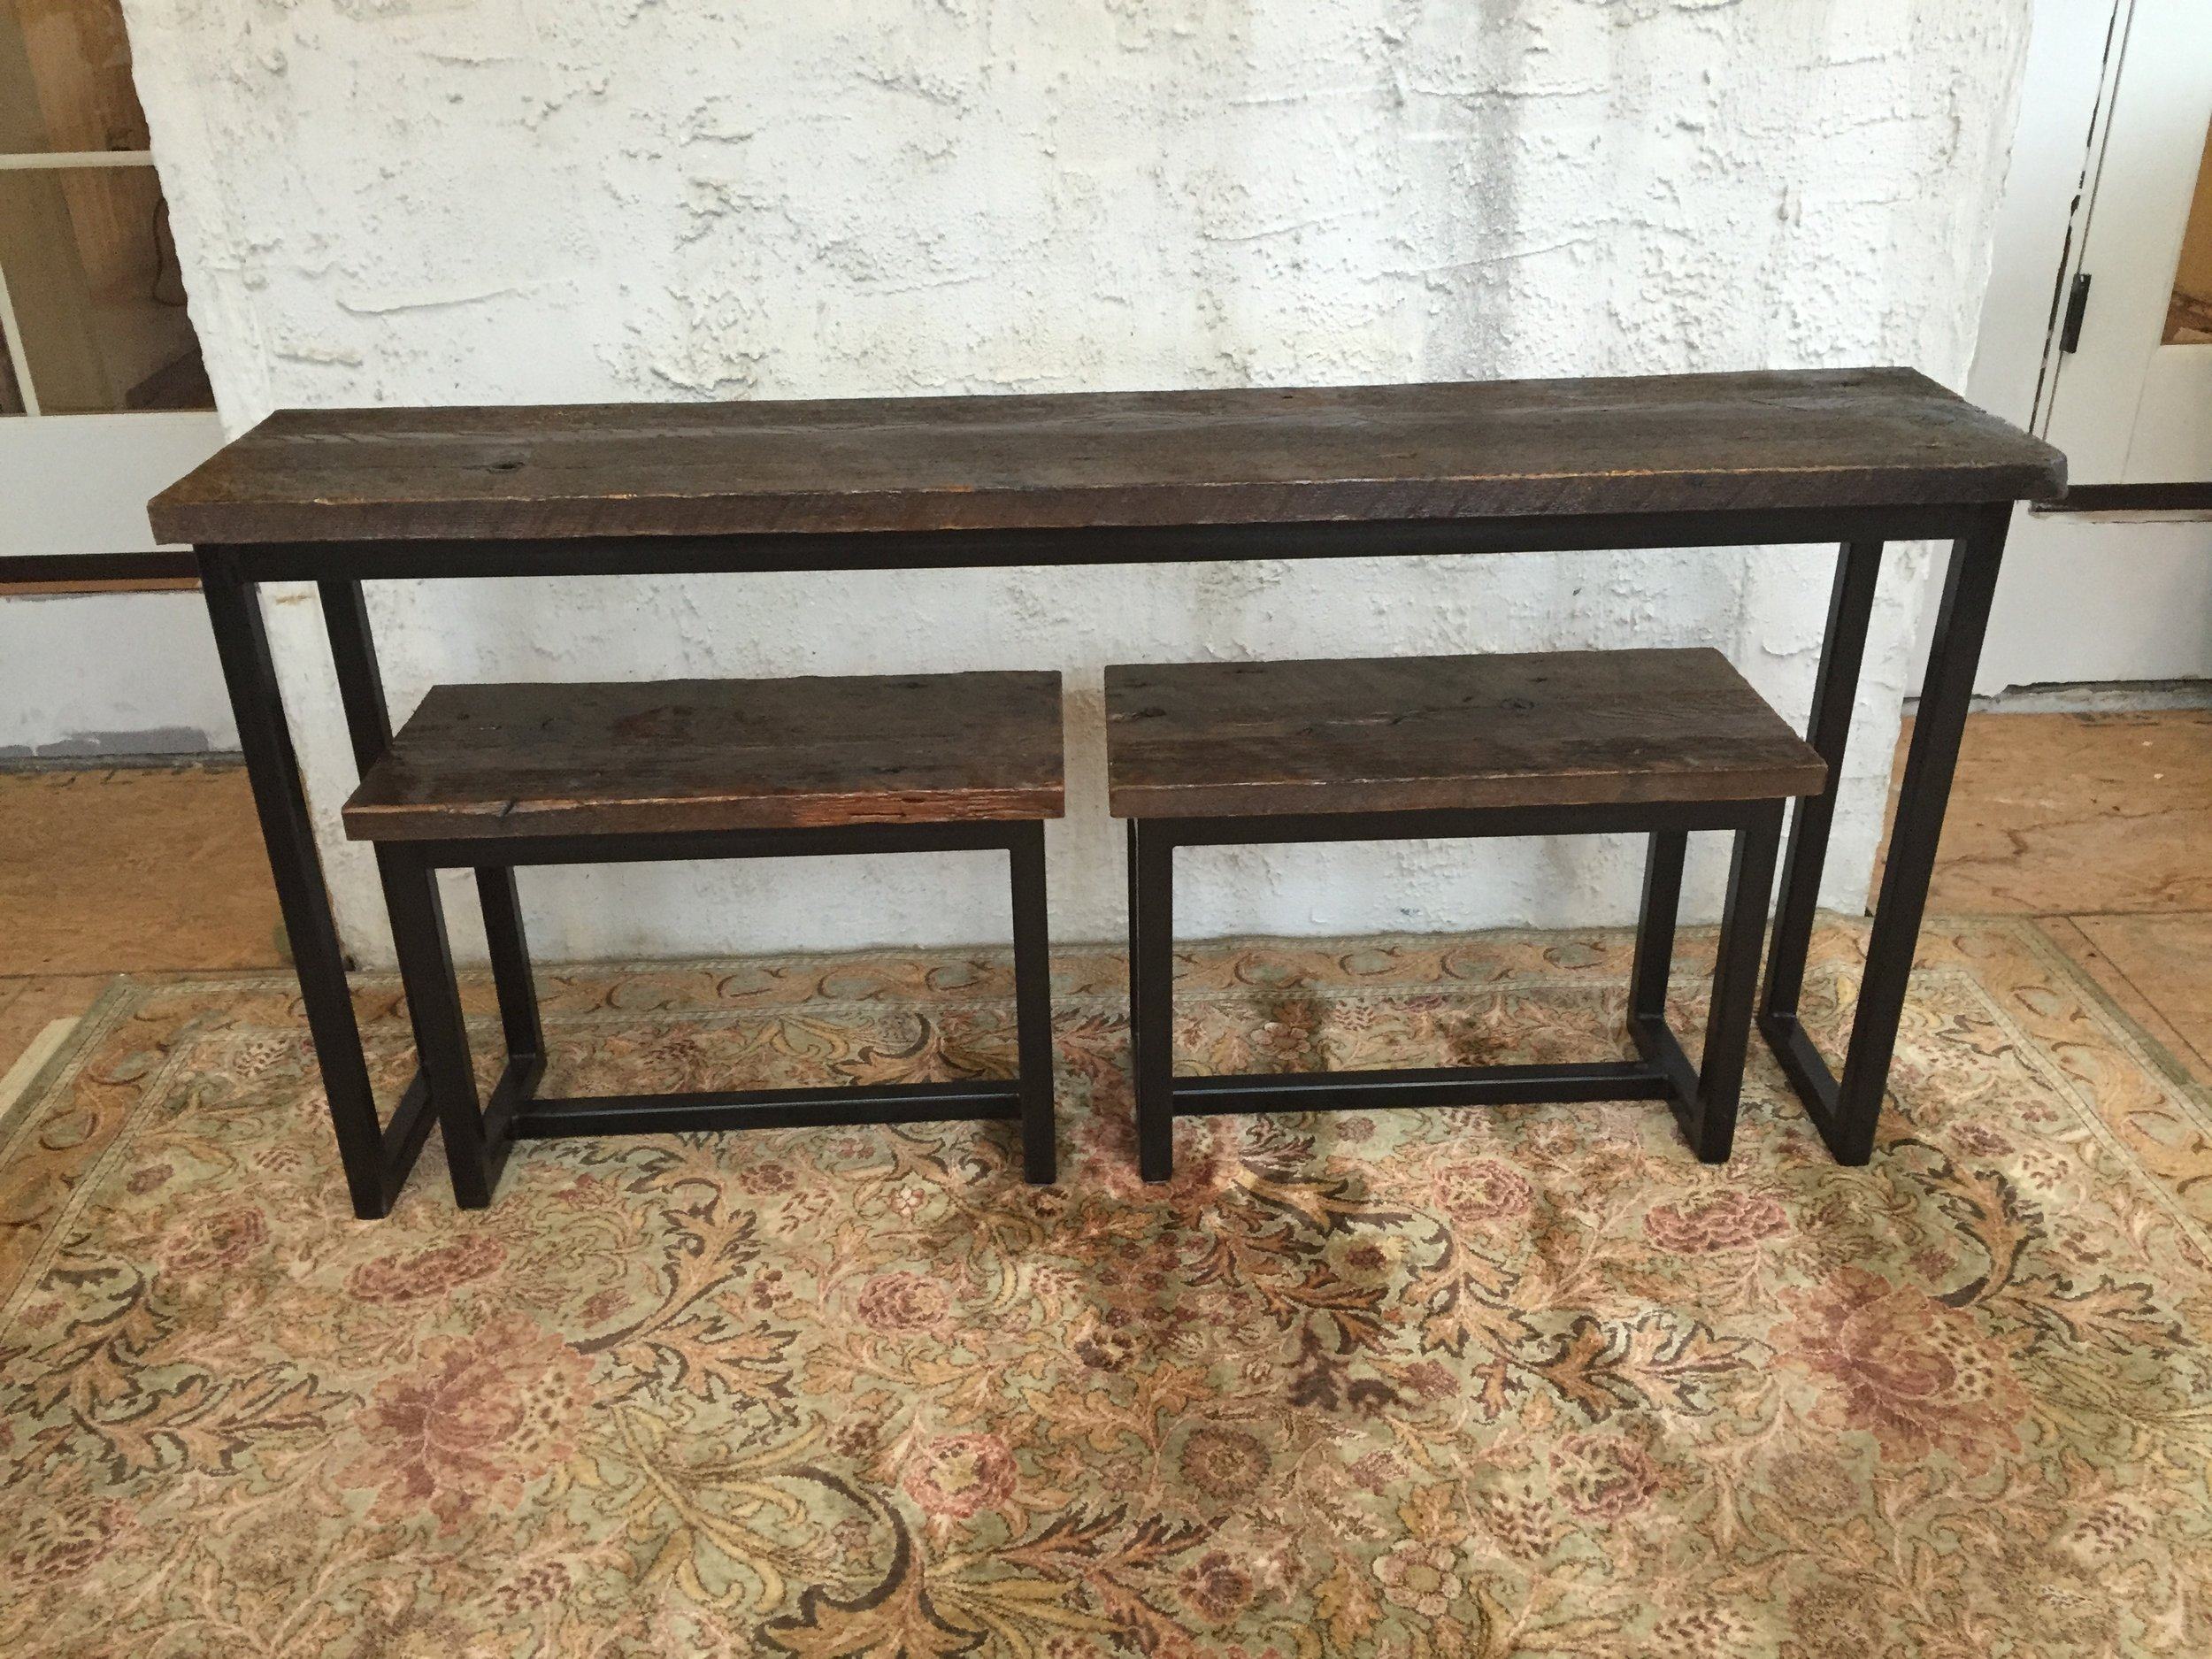 The benches store neatly underneath the table when not in use. Small furniture pads hidden under the feet ensure they are easy to move around.